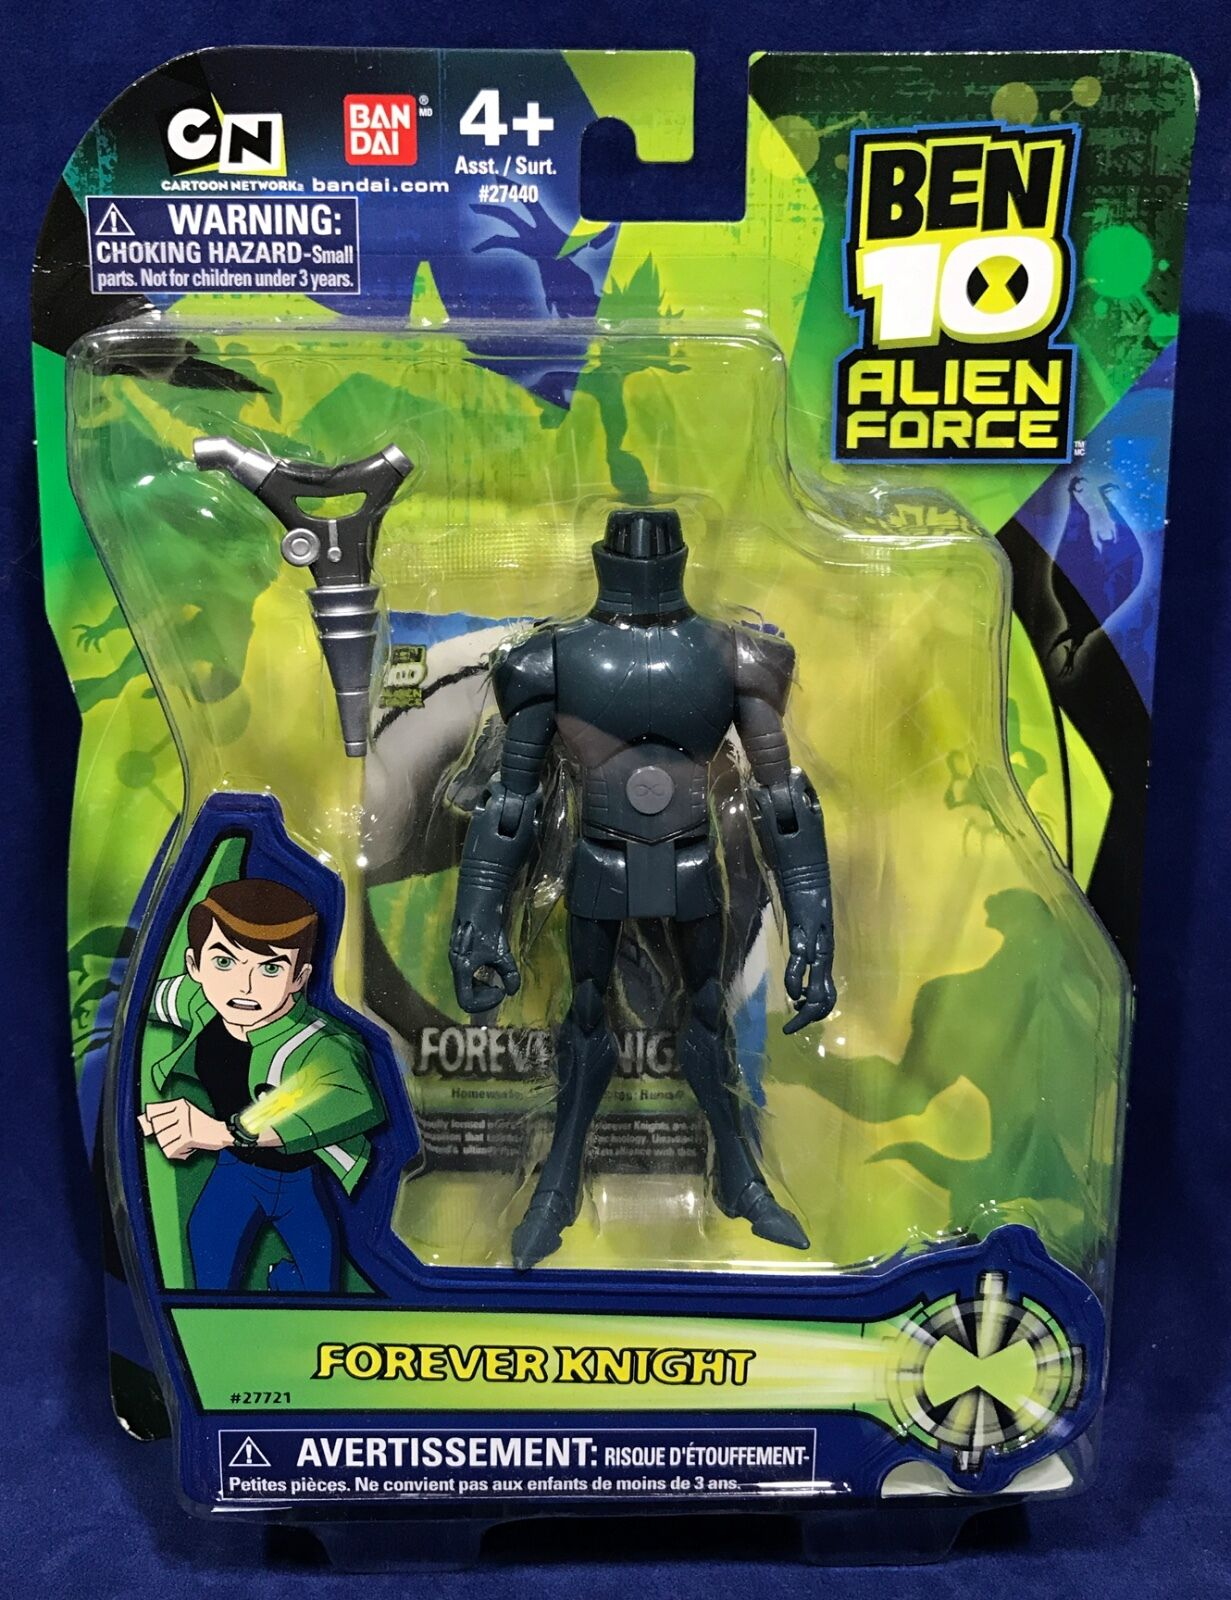 New FOREVER KNIGHT - 4  Ben 10 ALIEN FORCE Figure Collection BANDAI